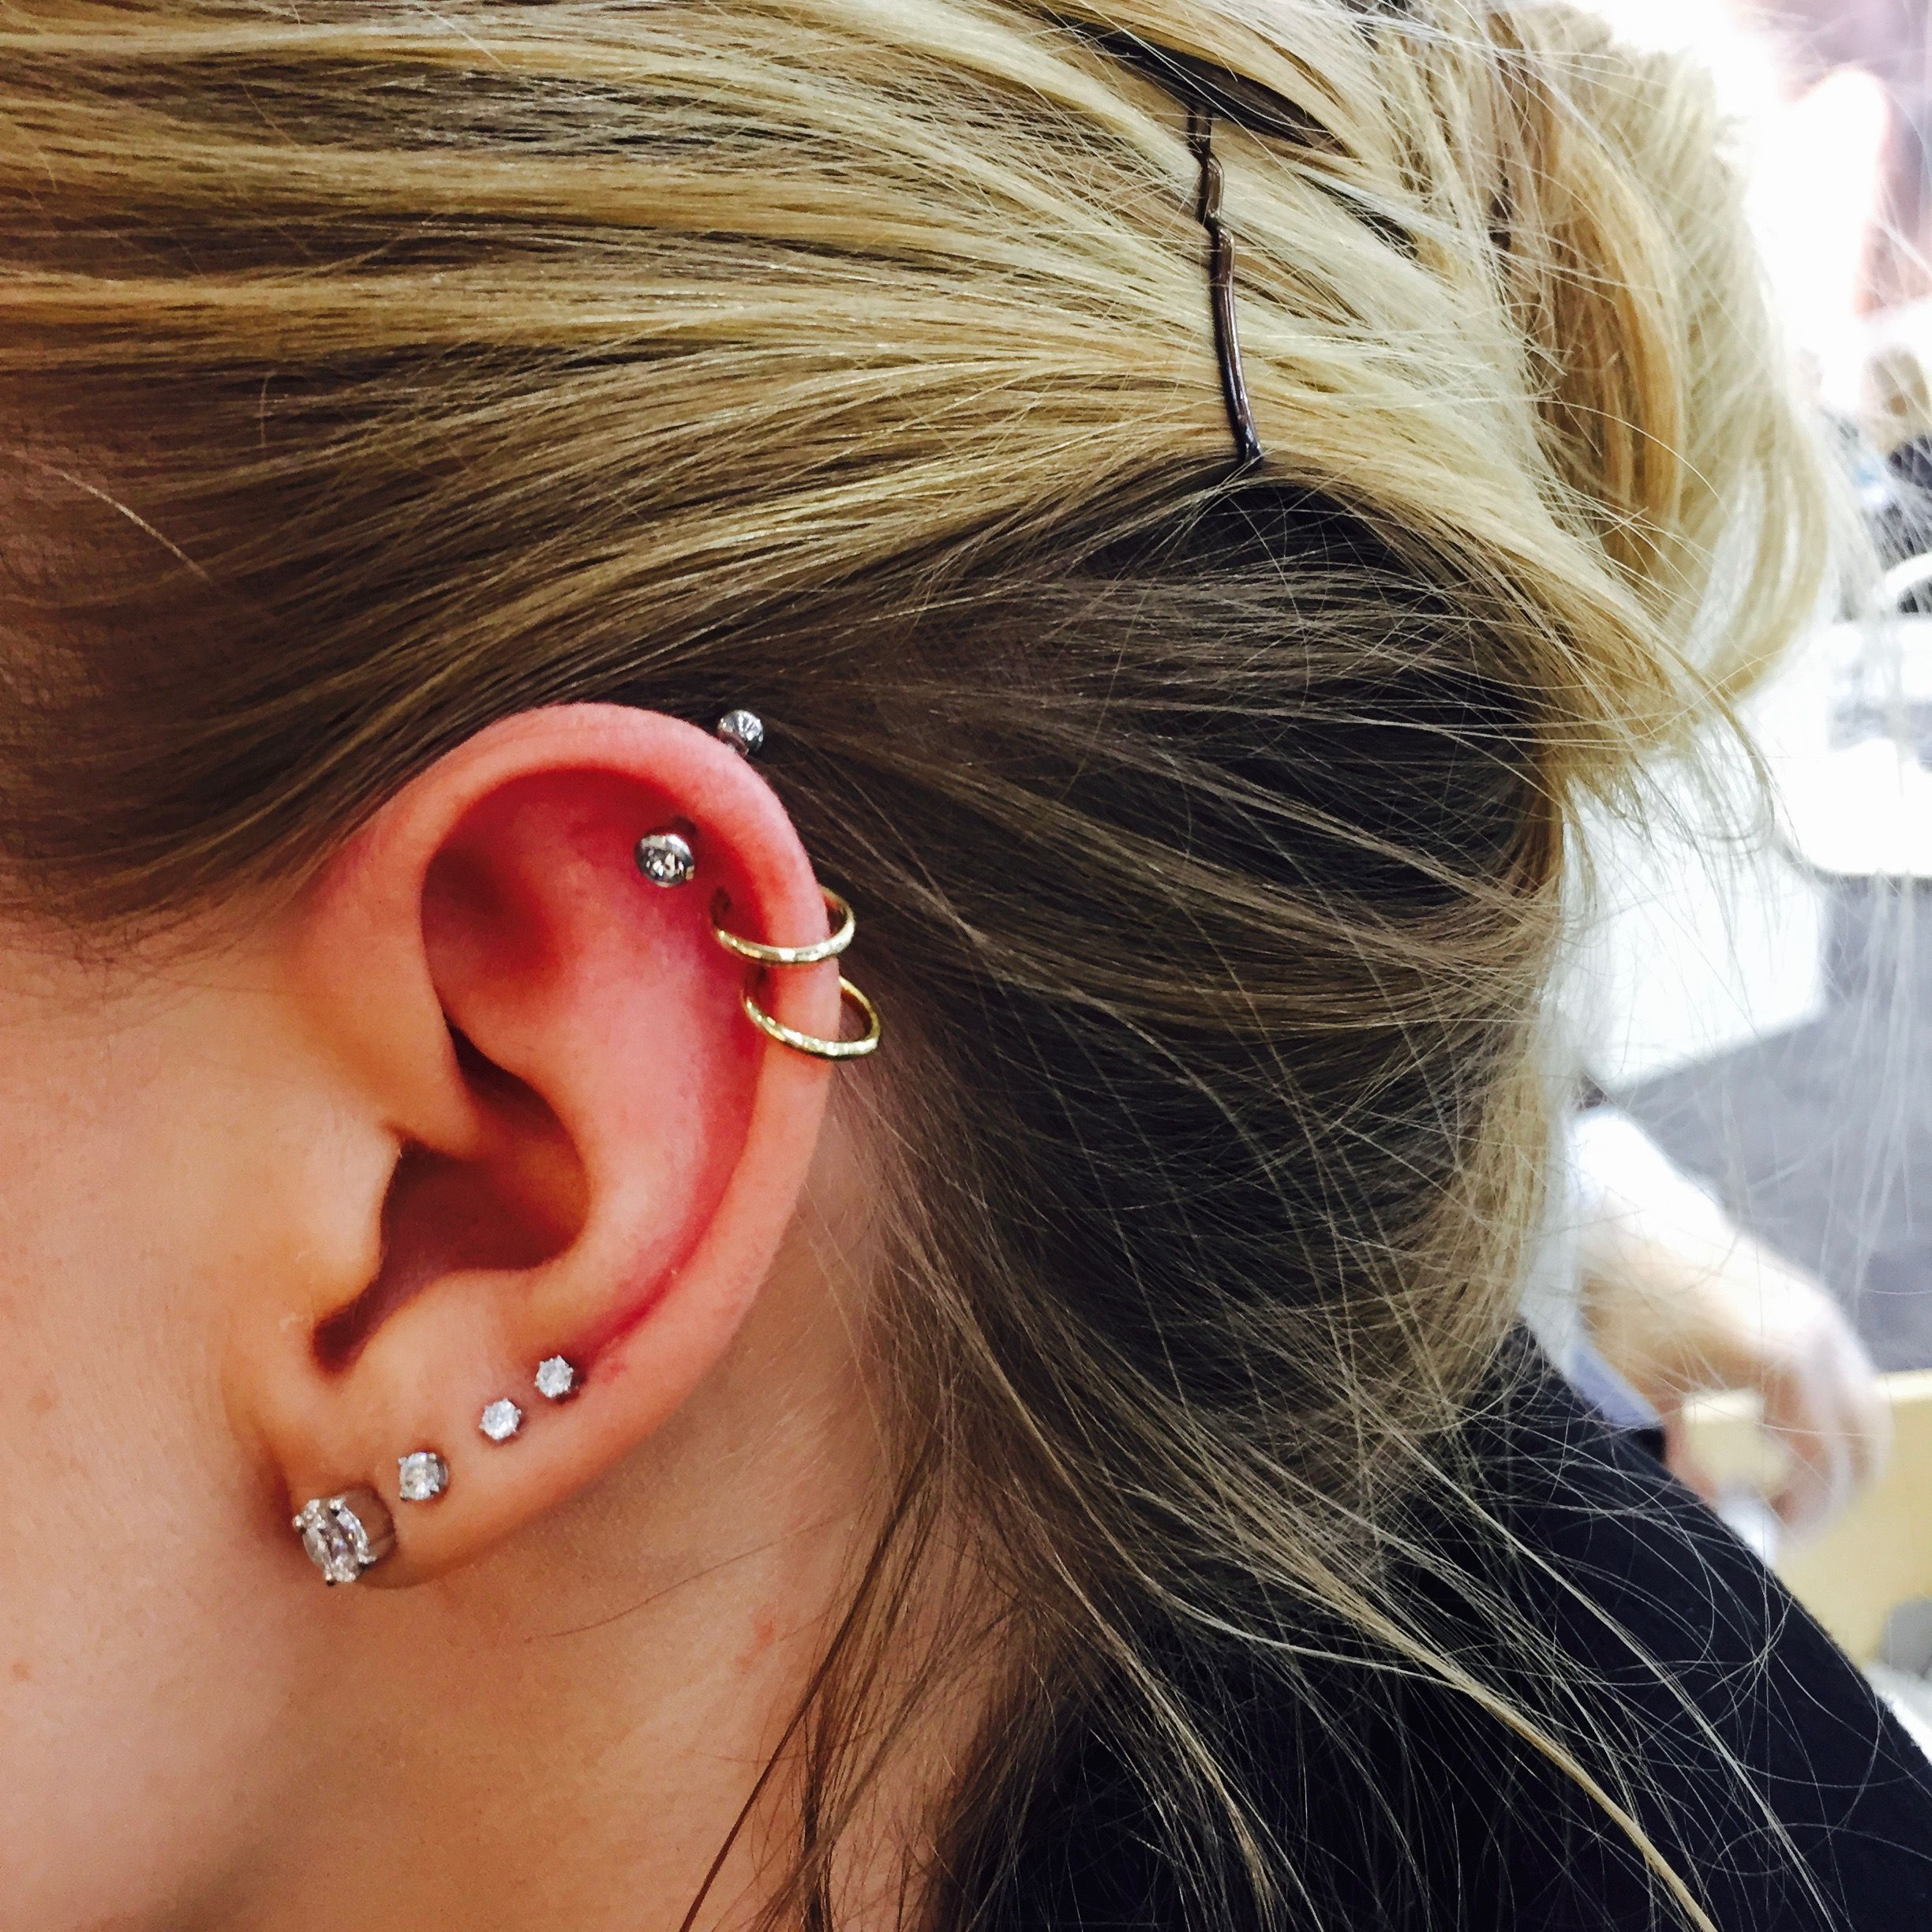 Piercing jewelry names  Beautiful ear adorned with four lobe and three helix piercings the